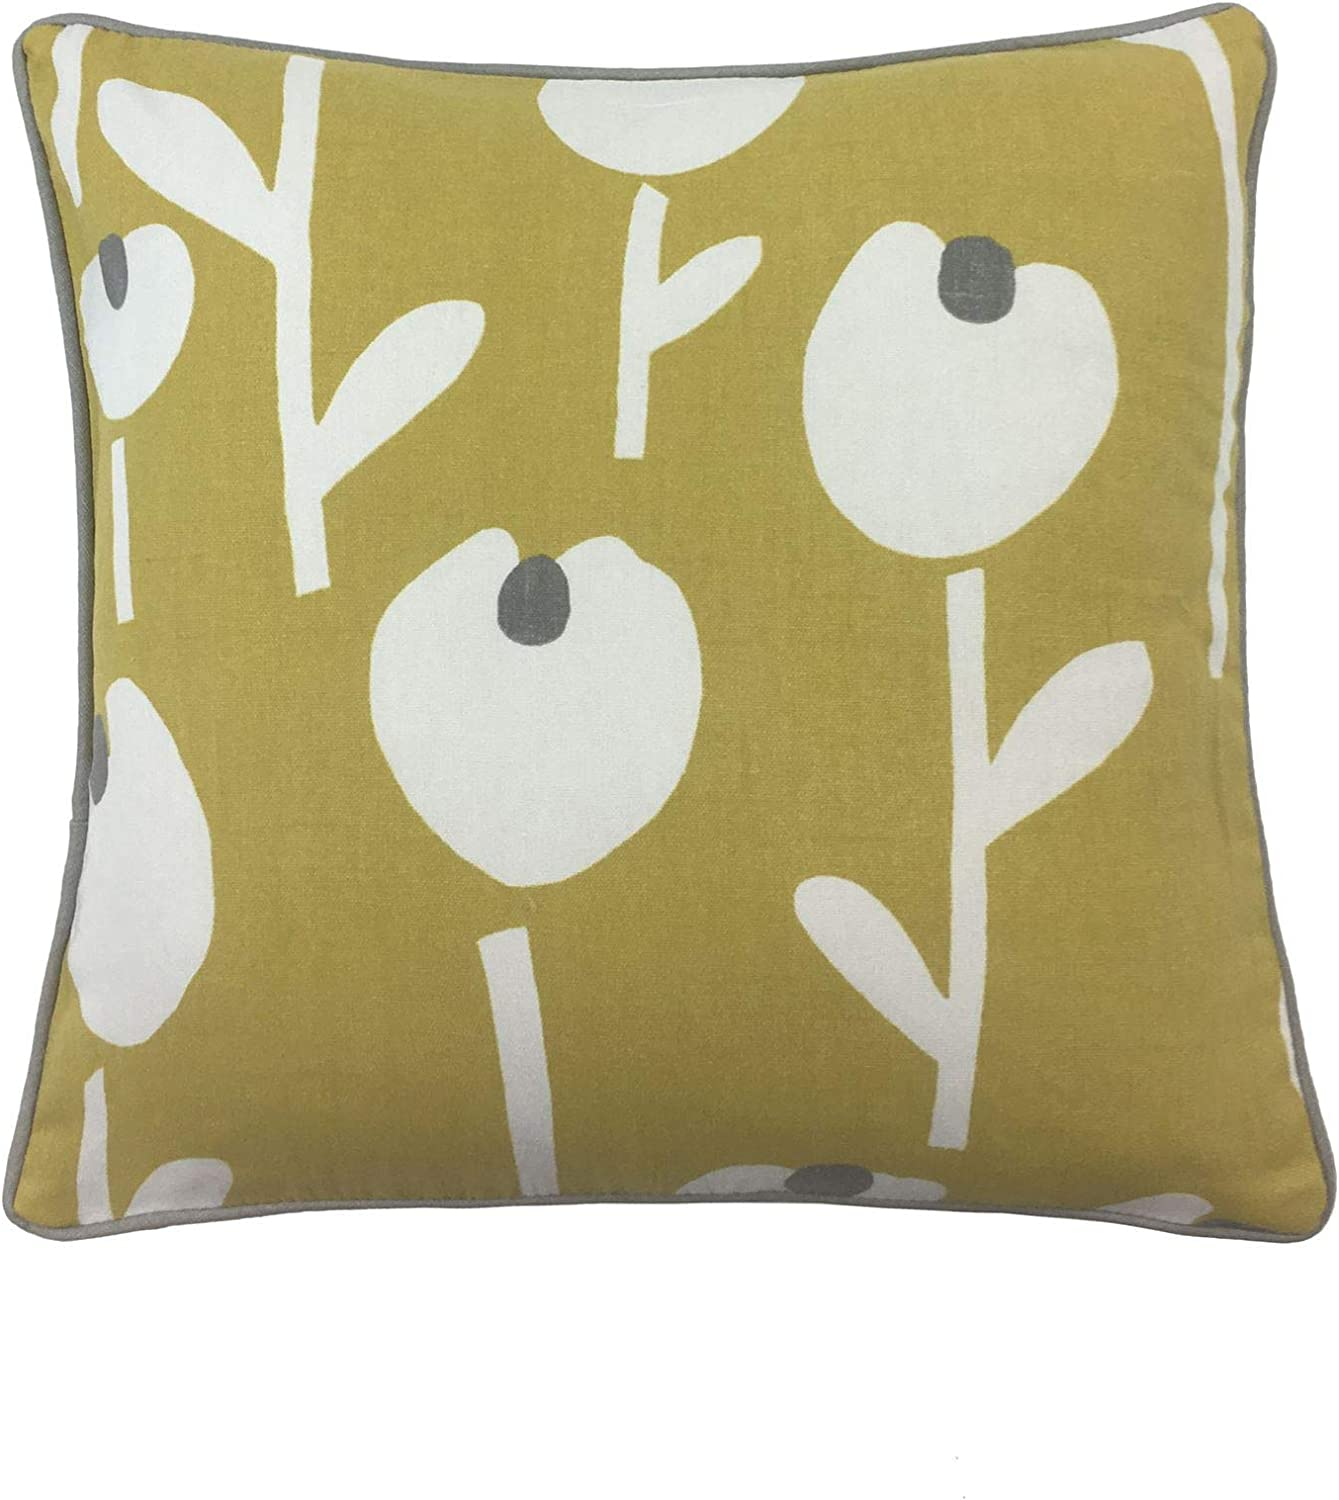 """2 X FLOWER SILHOUETTE PATTERNED GREY WHITE PIPED 17/"""" 43CM CUSHION COVERS"""